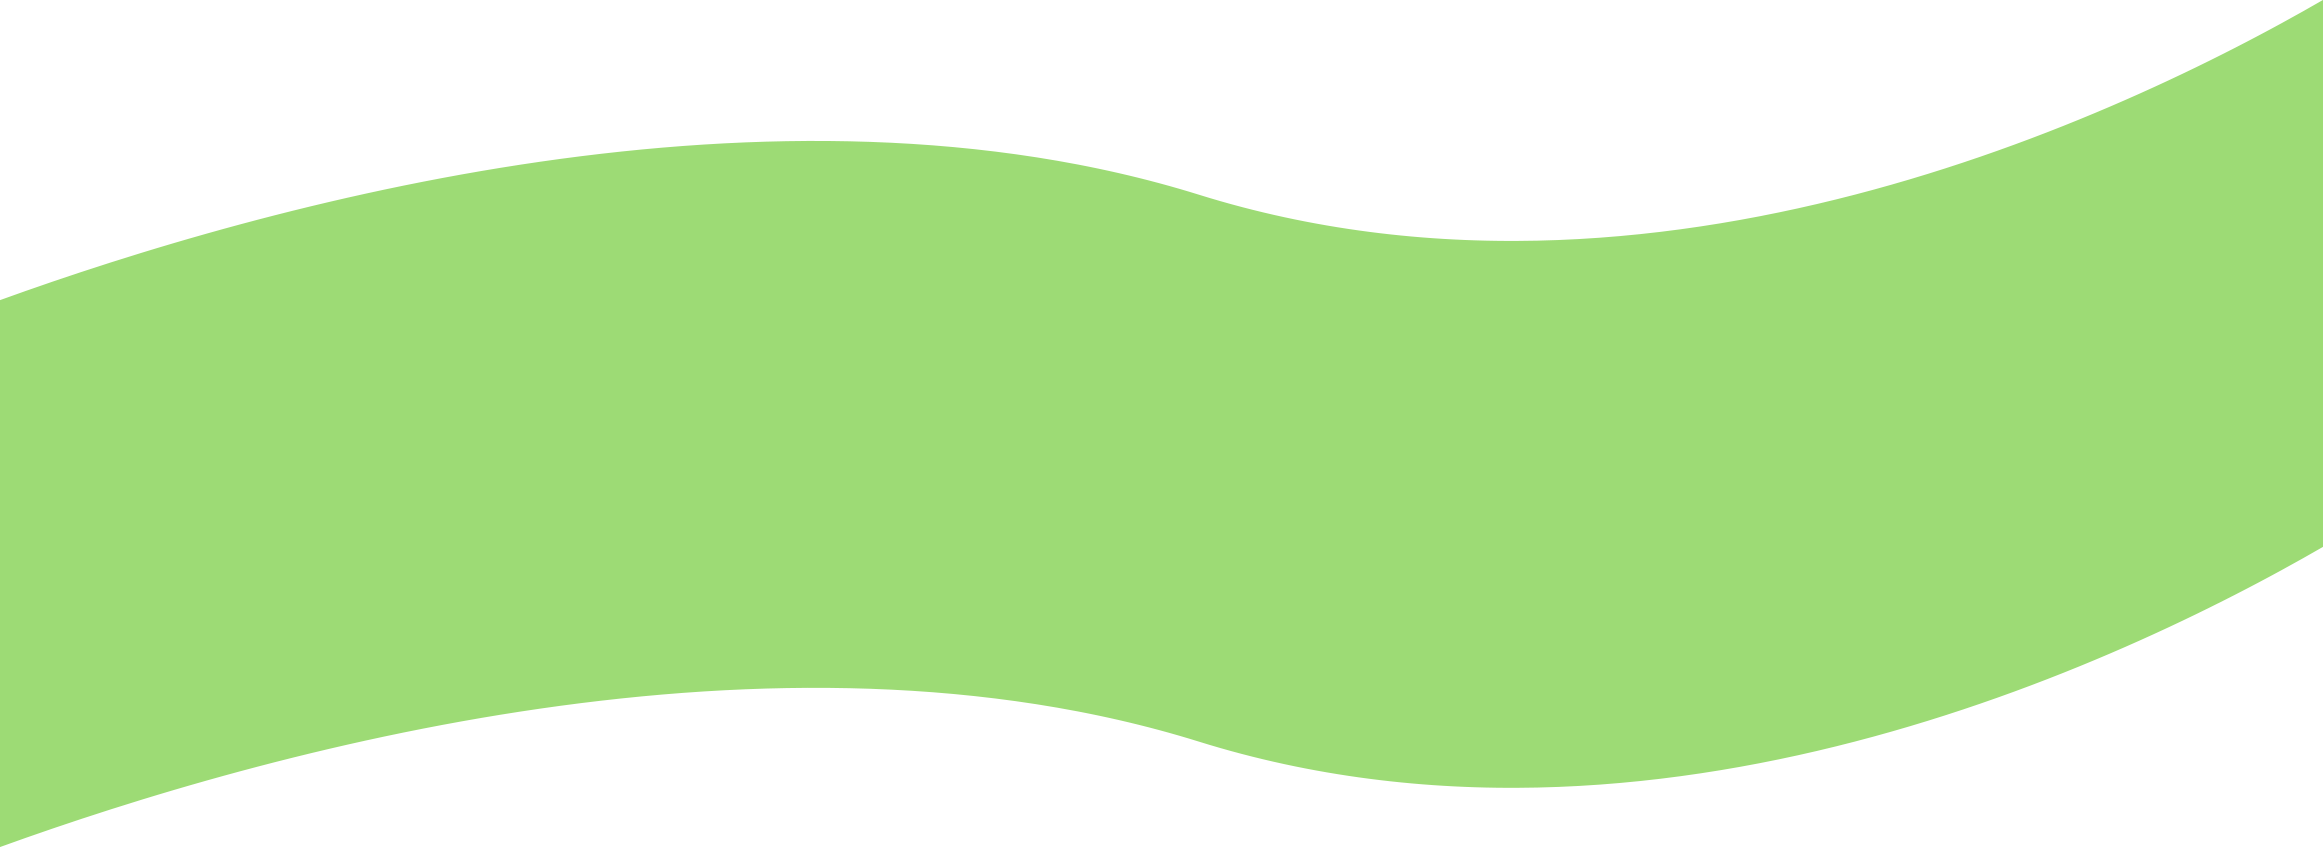 wave_green_trans.png